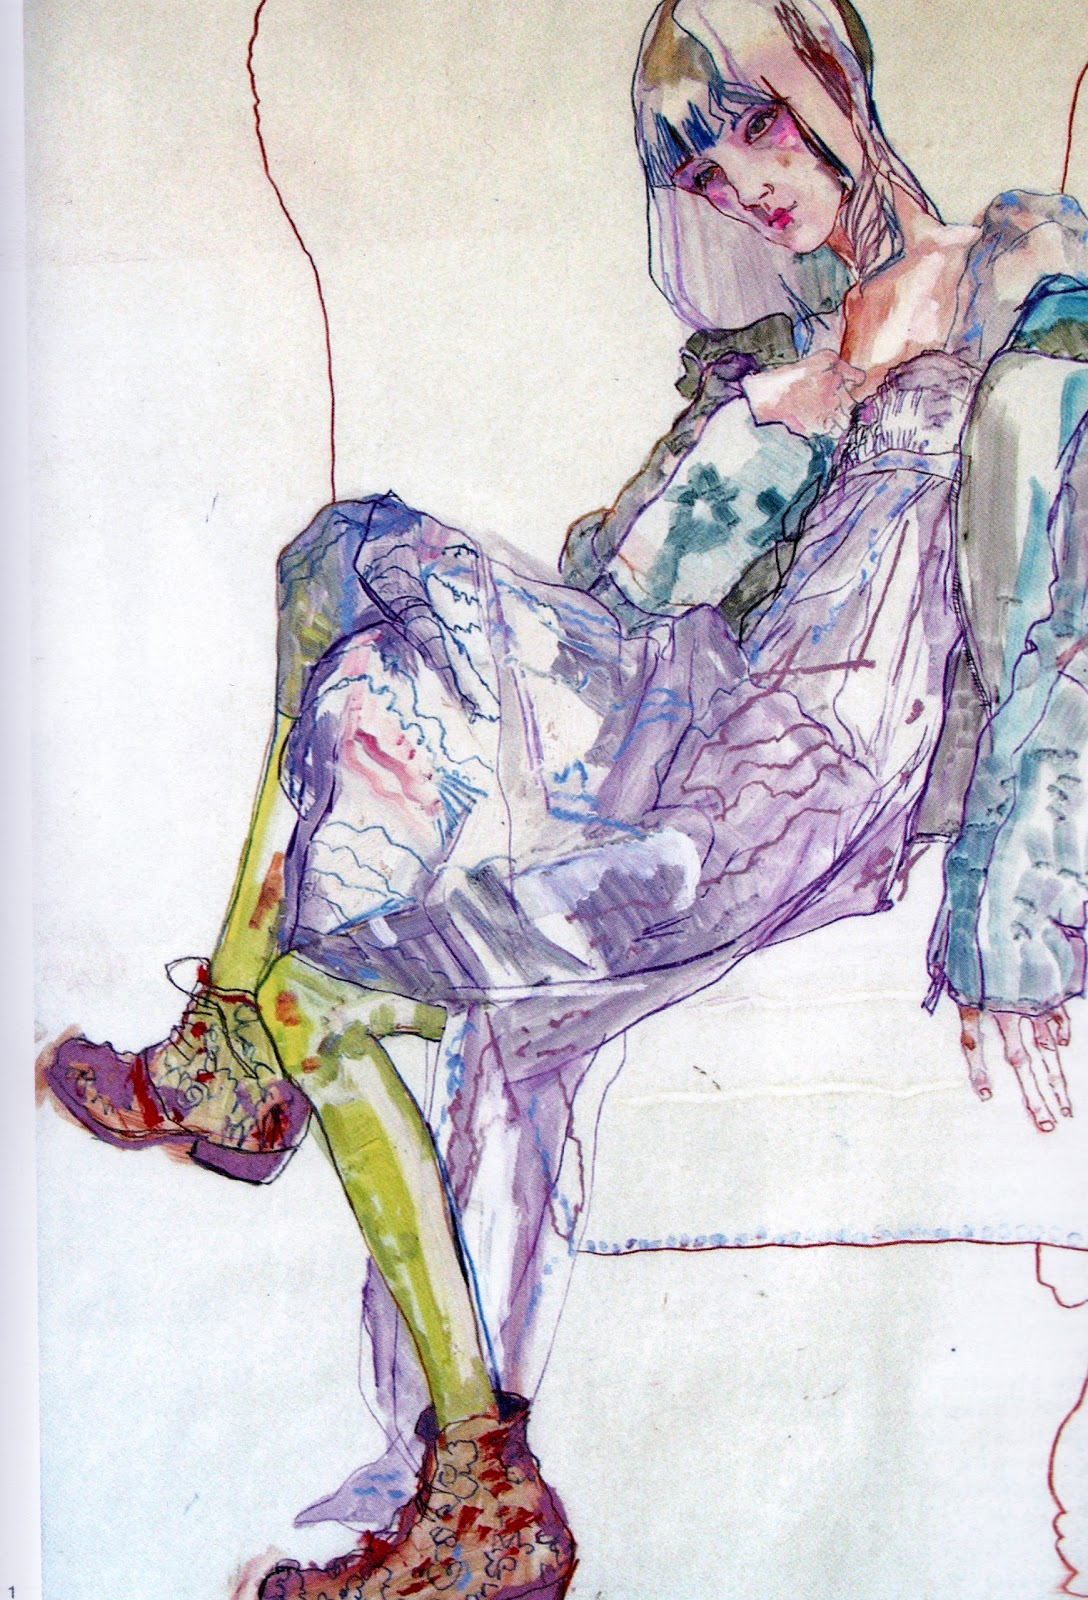 Callyfal Howard Tangye Most Images Taken Direct From His